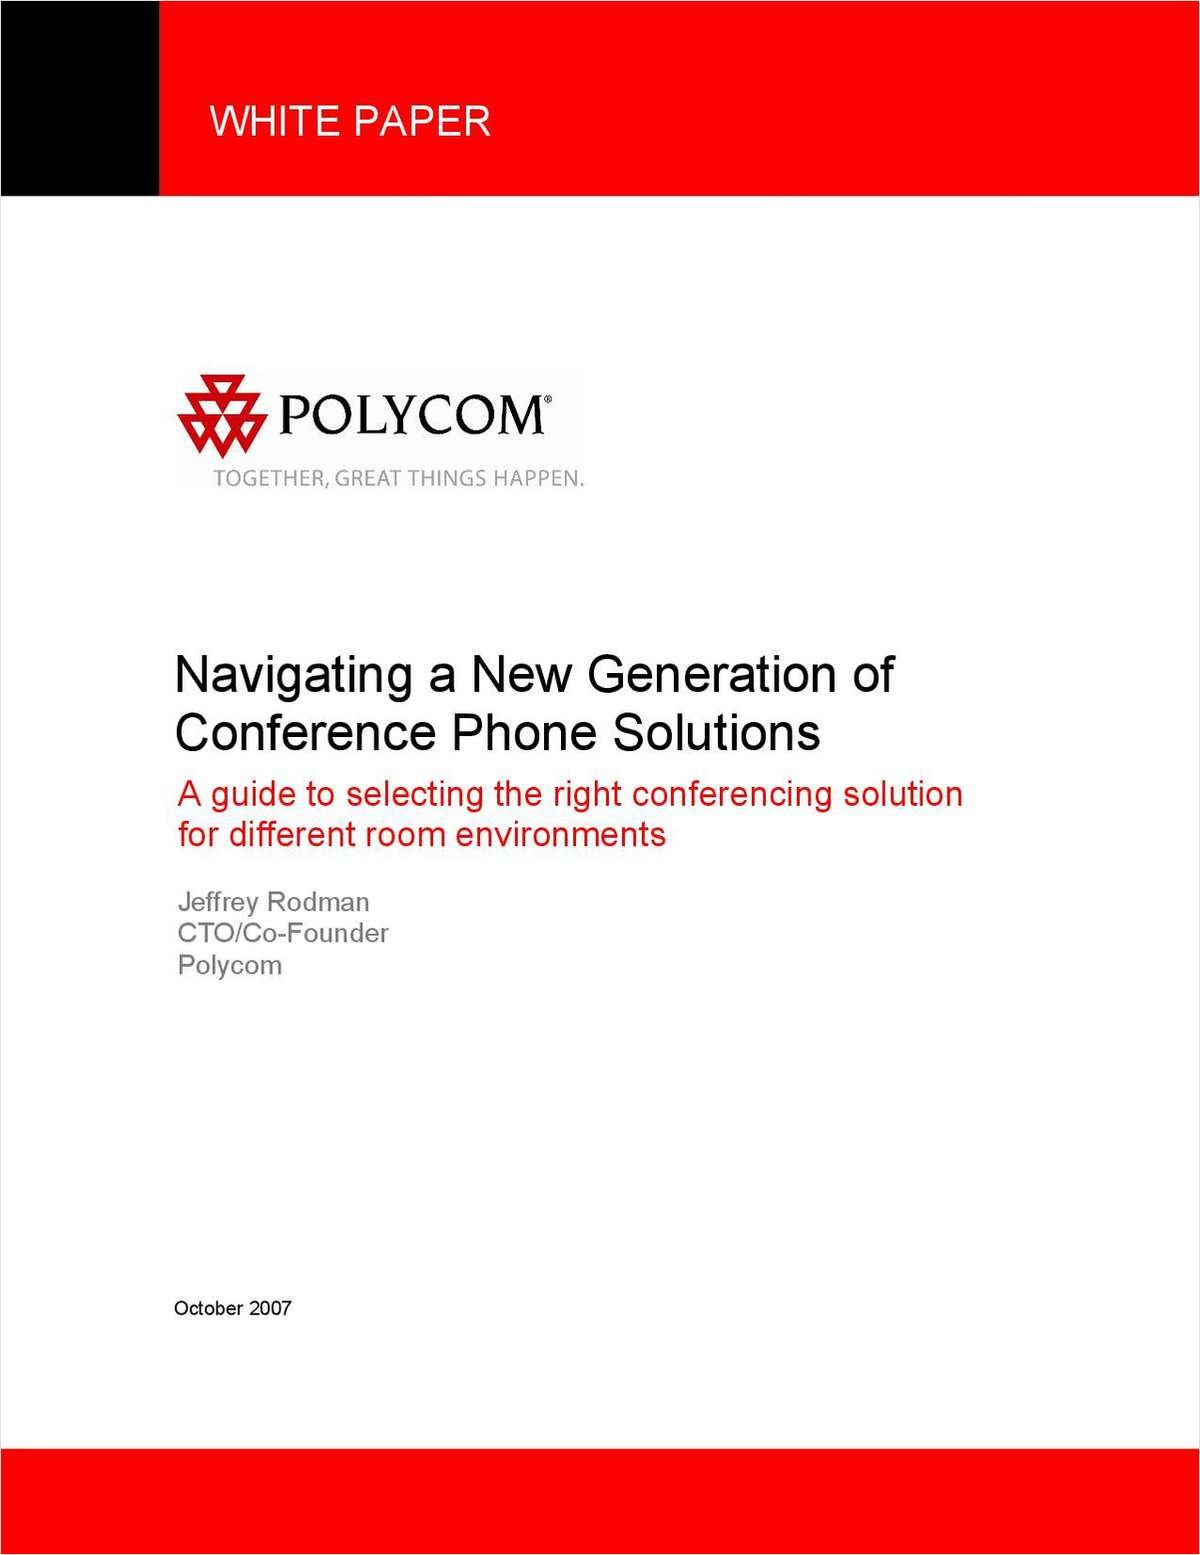 Navigating a New Generation of Conference Phone Solutions